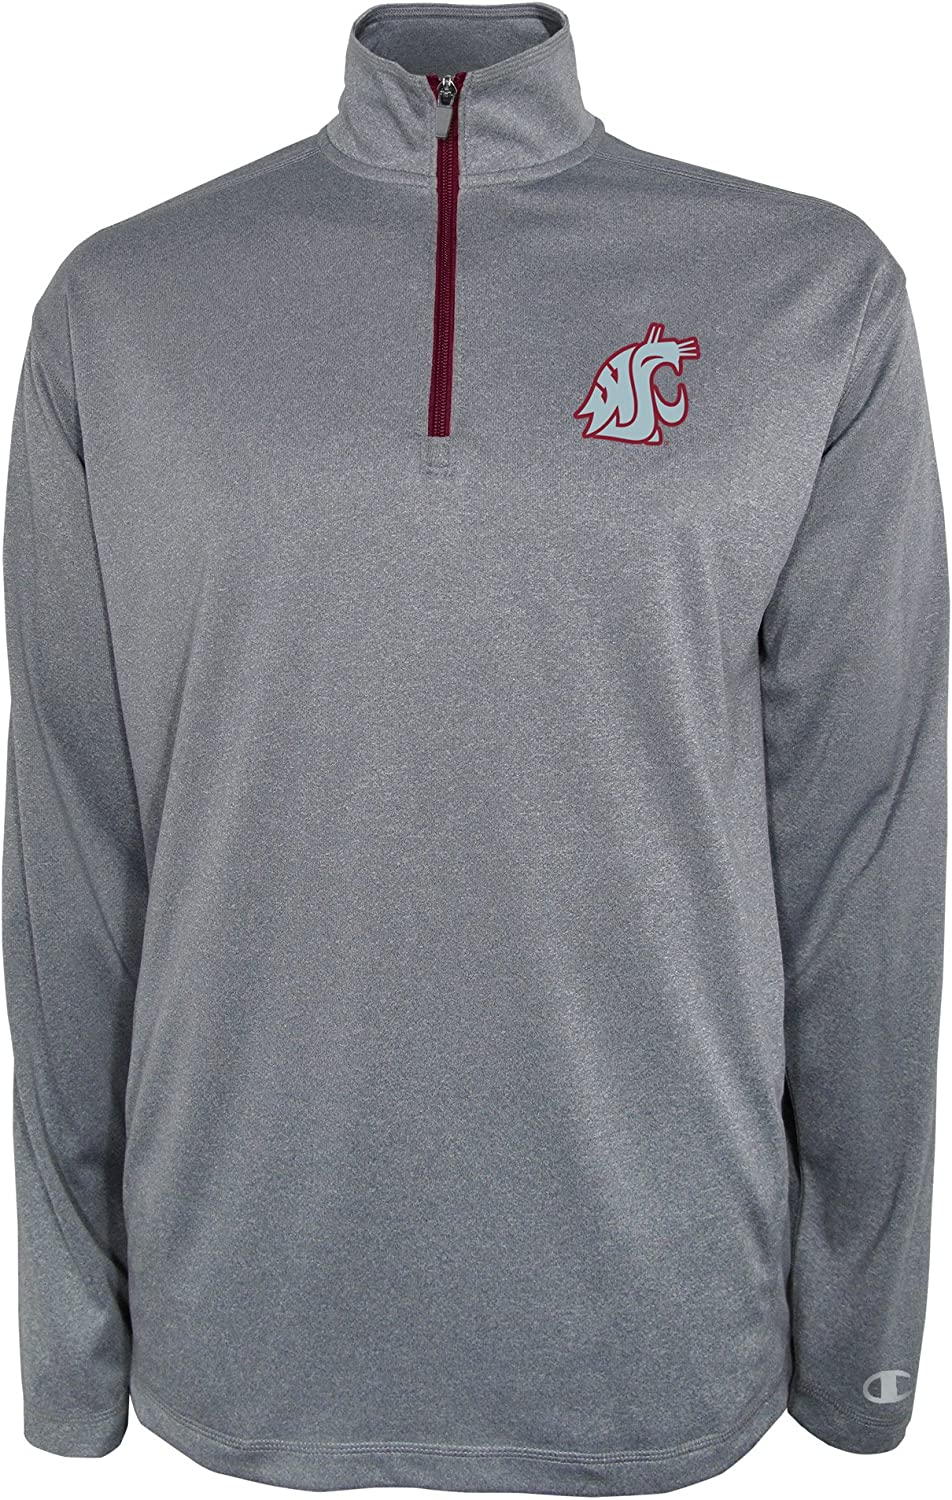 Officially Licensed Unisex NCAA Team Sweatshirt Champion Adult Fleece Quarter Zip